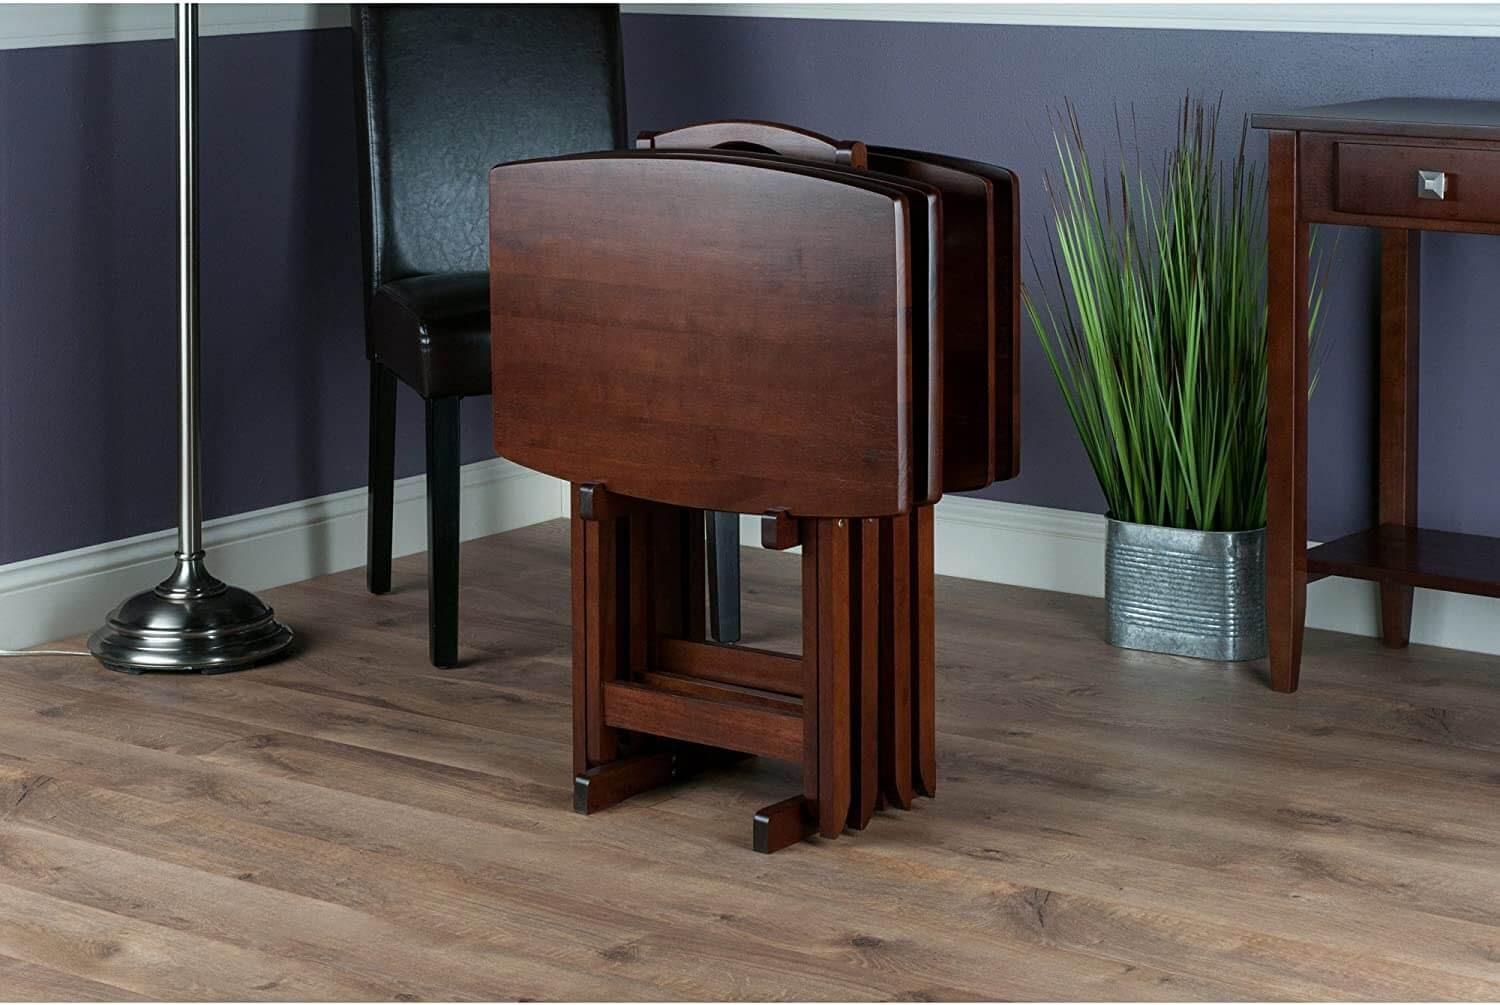 Fold up table in a dining room